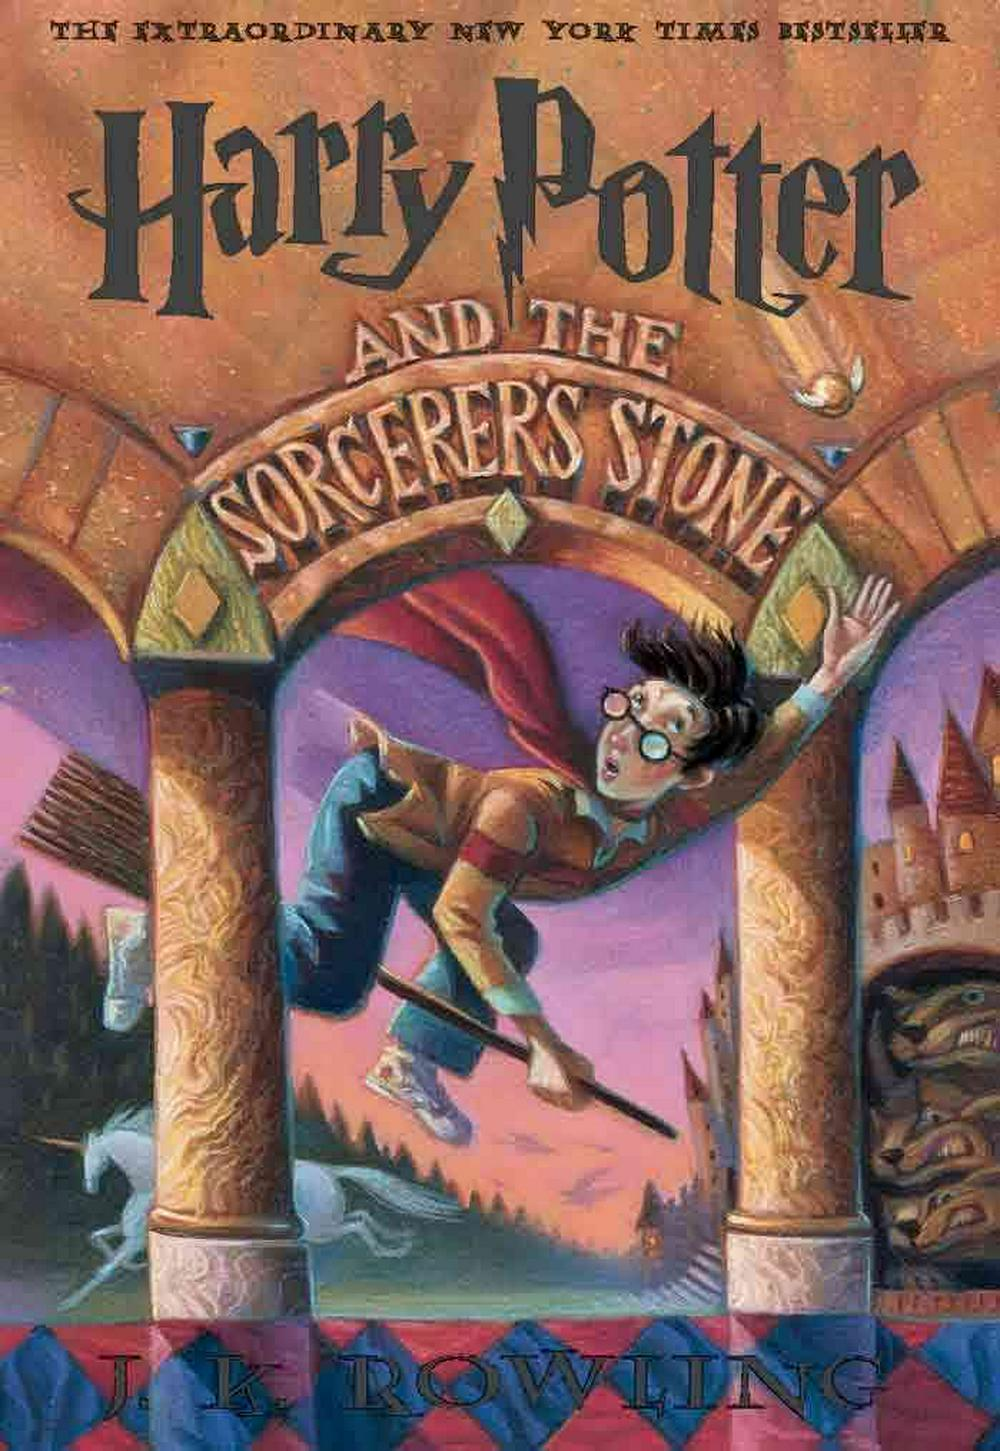 Harry Potter and the Sorcerer's Stone by J. K. Rowling, ISBN: 9780613206334